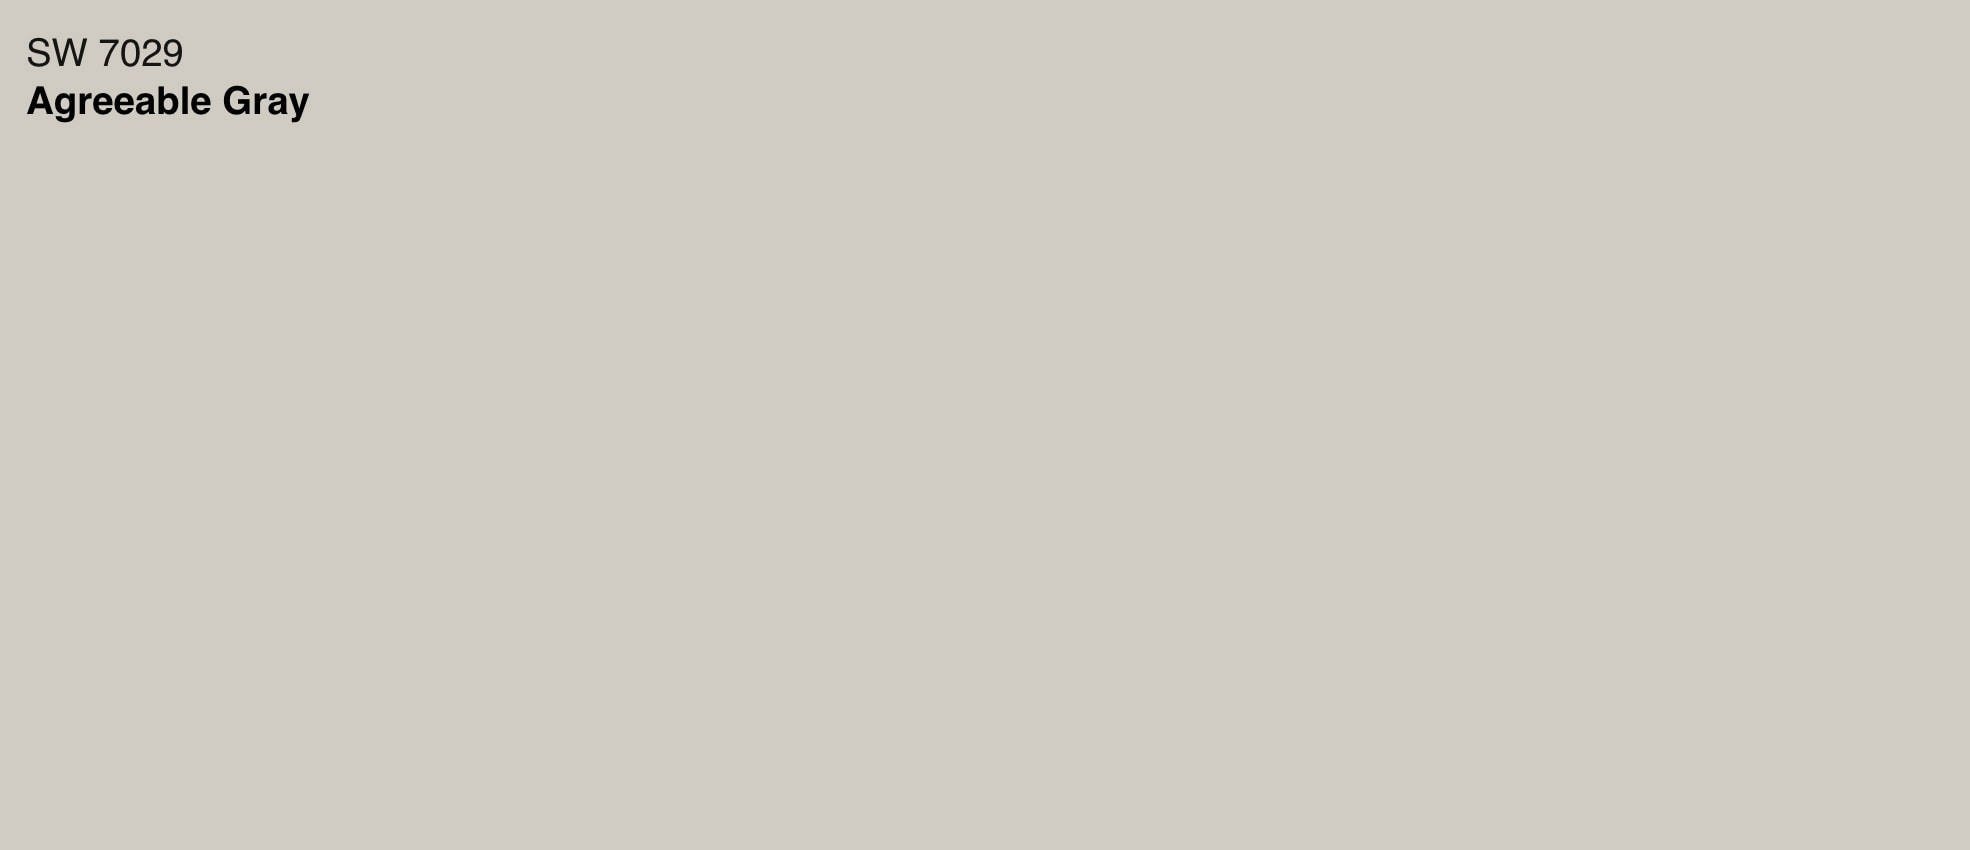 sherwin williams agreeable gray swatch